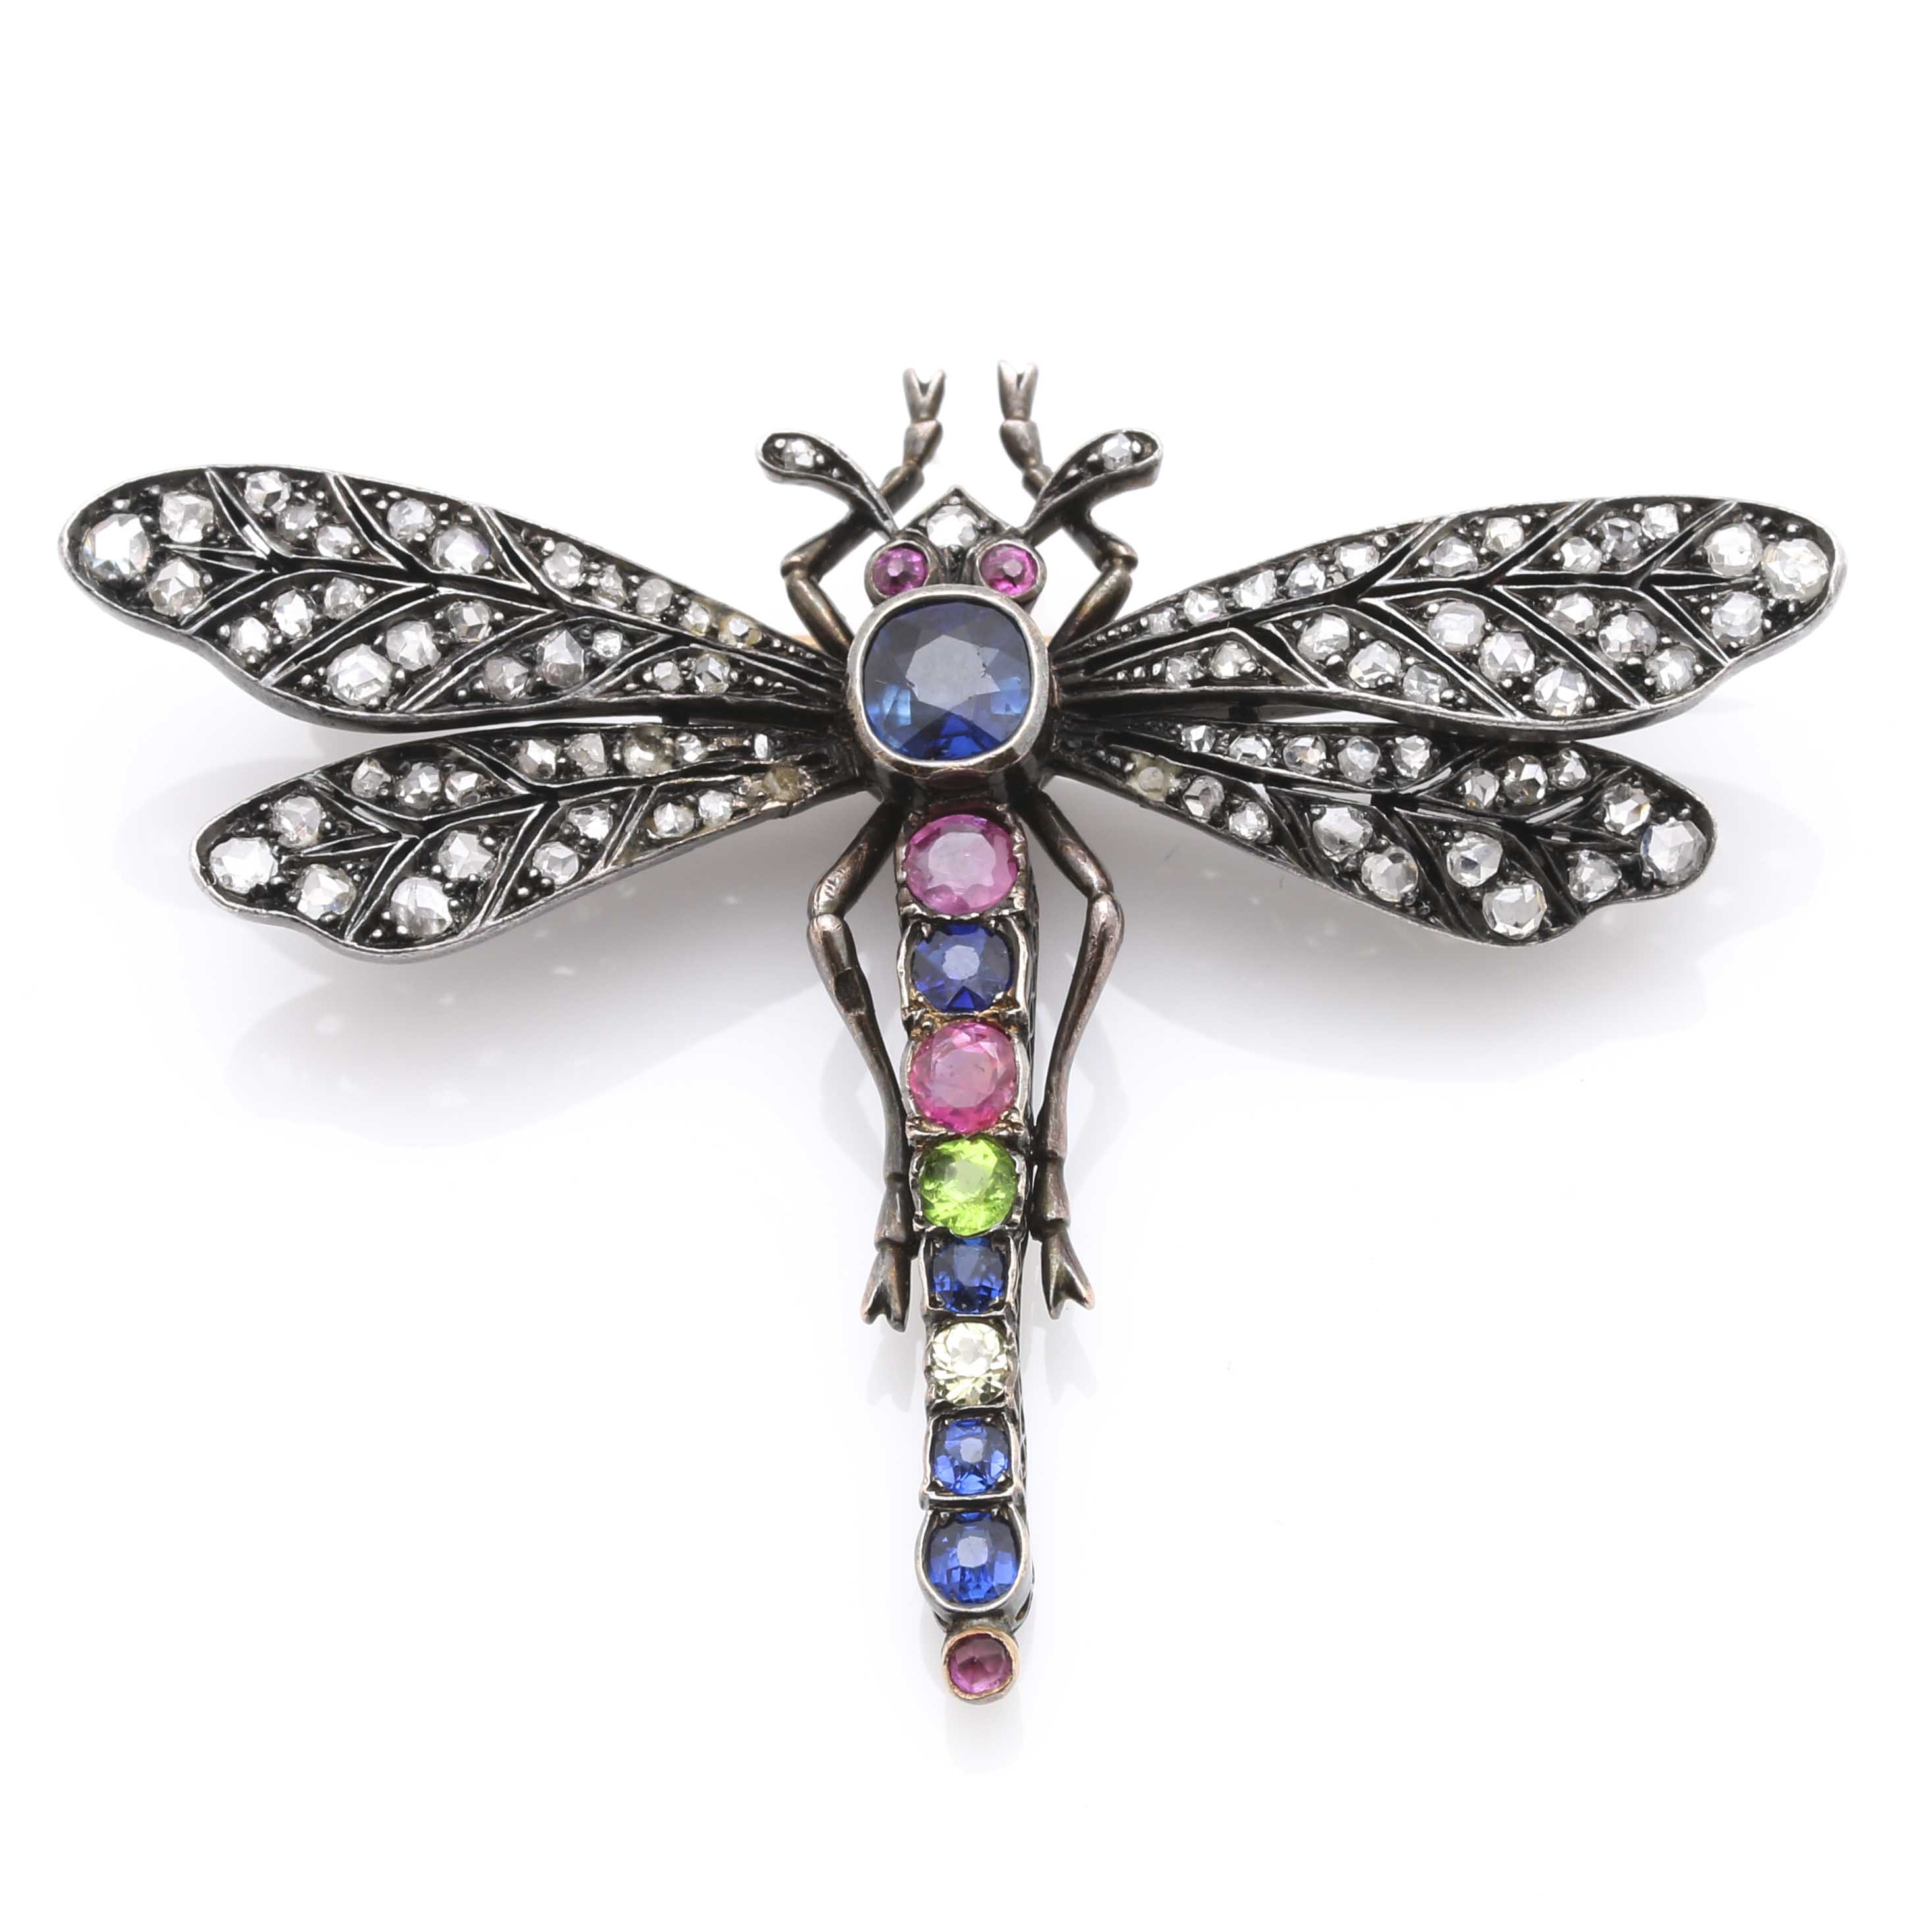 18K Yellow Gold and Sterling Silver Gemstone French Art Nouveau Style Dragonfly